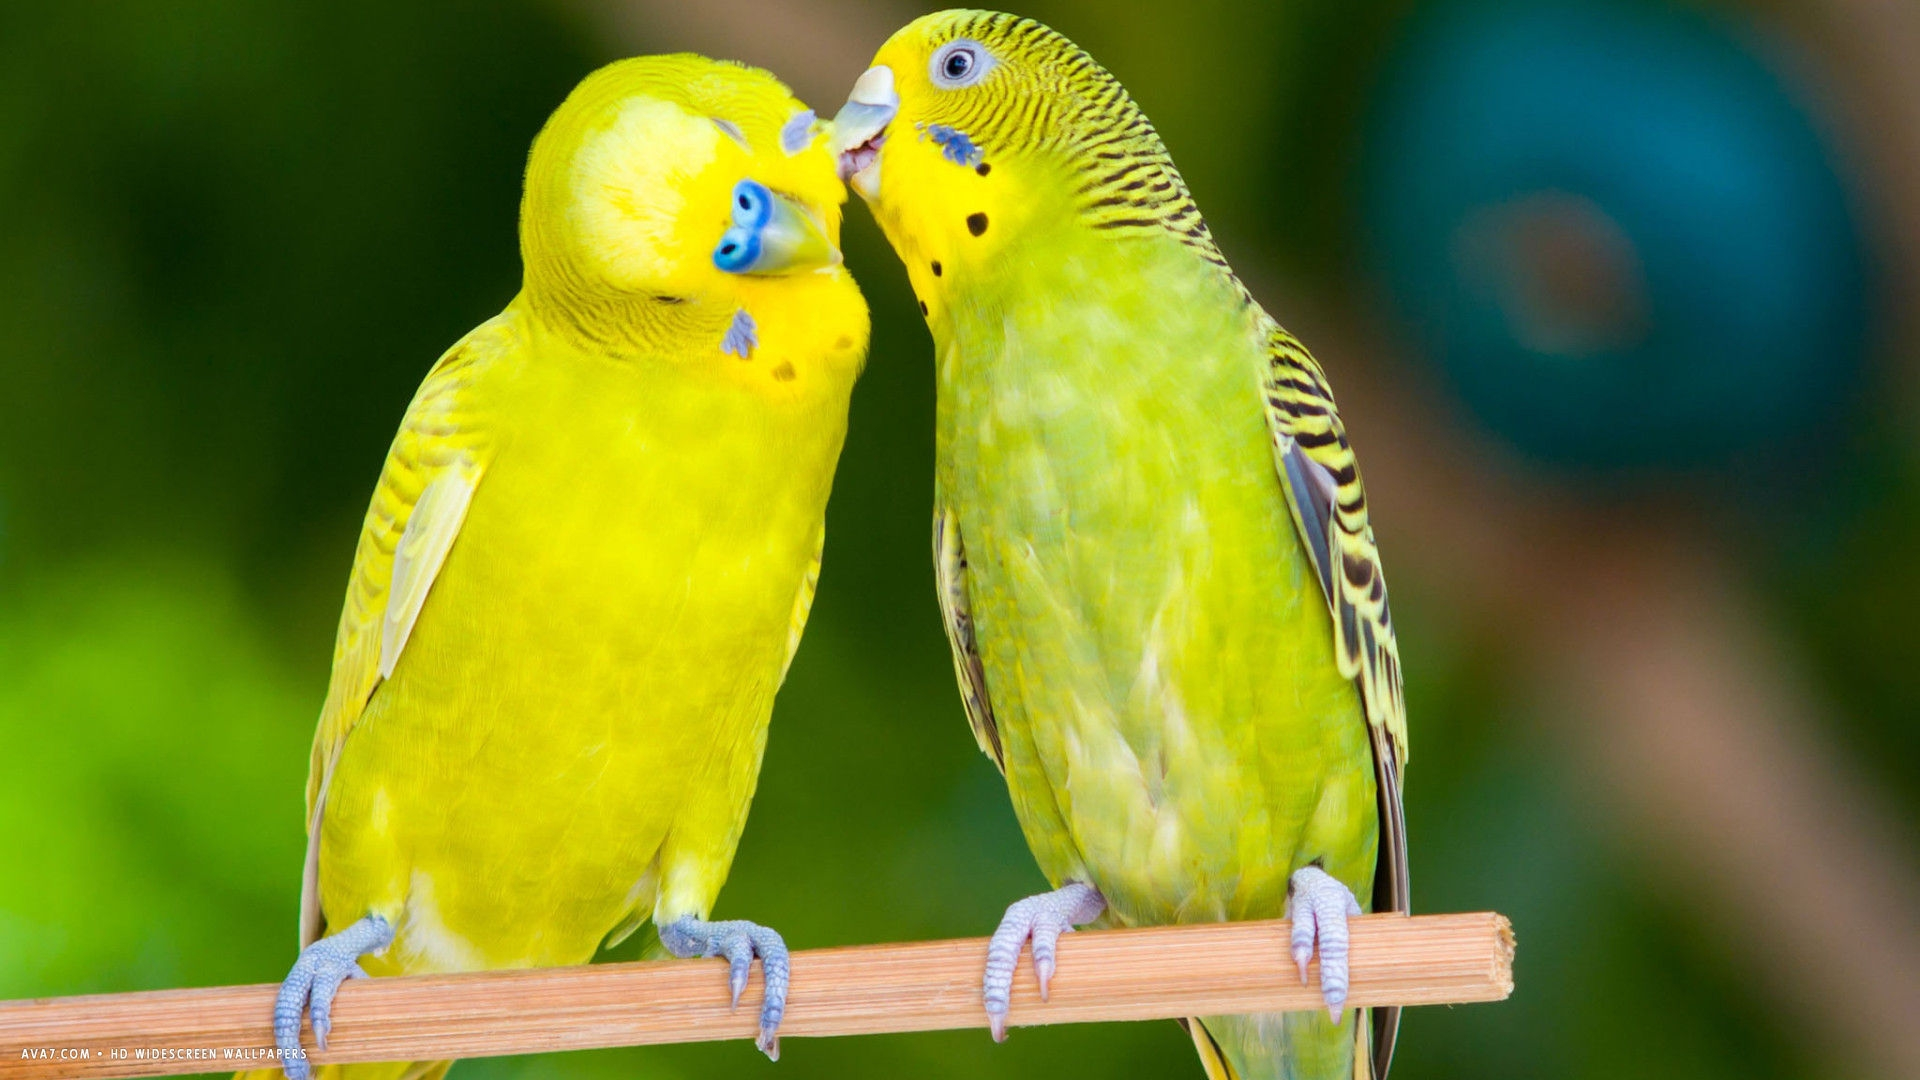 Best-images-of-love-birds-hd-Cute-Love-Bird-Colorful-Parrot-Hd-inside-Images-Of-Love-wallpaper-wpc5802791